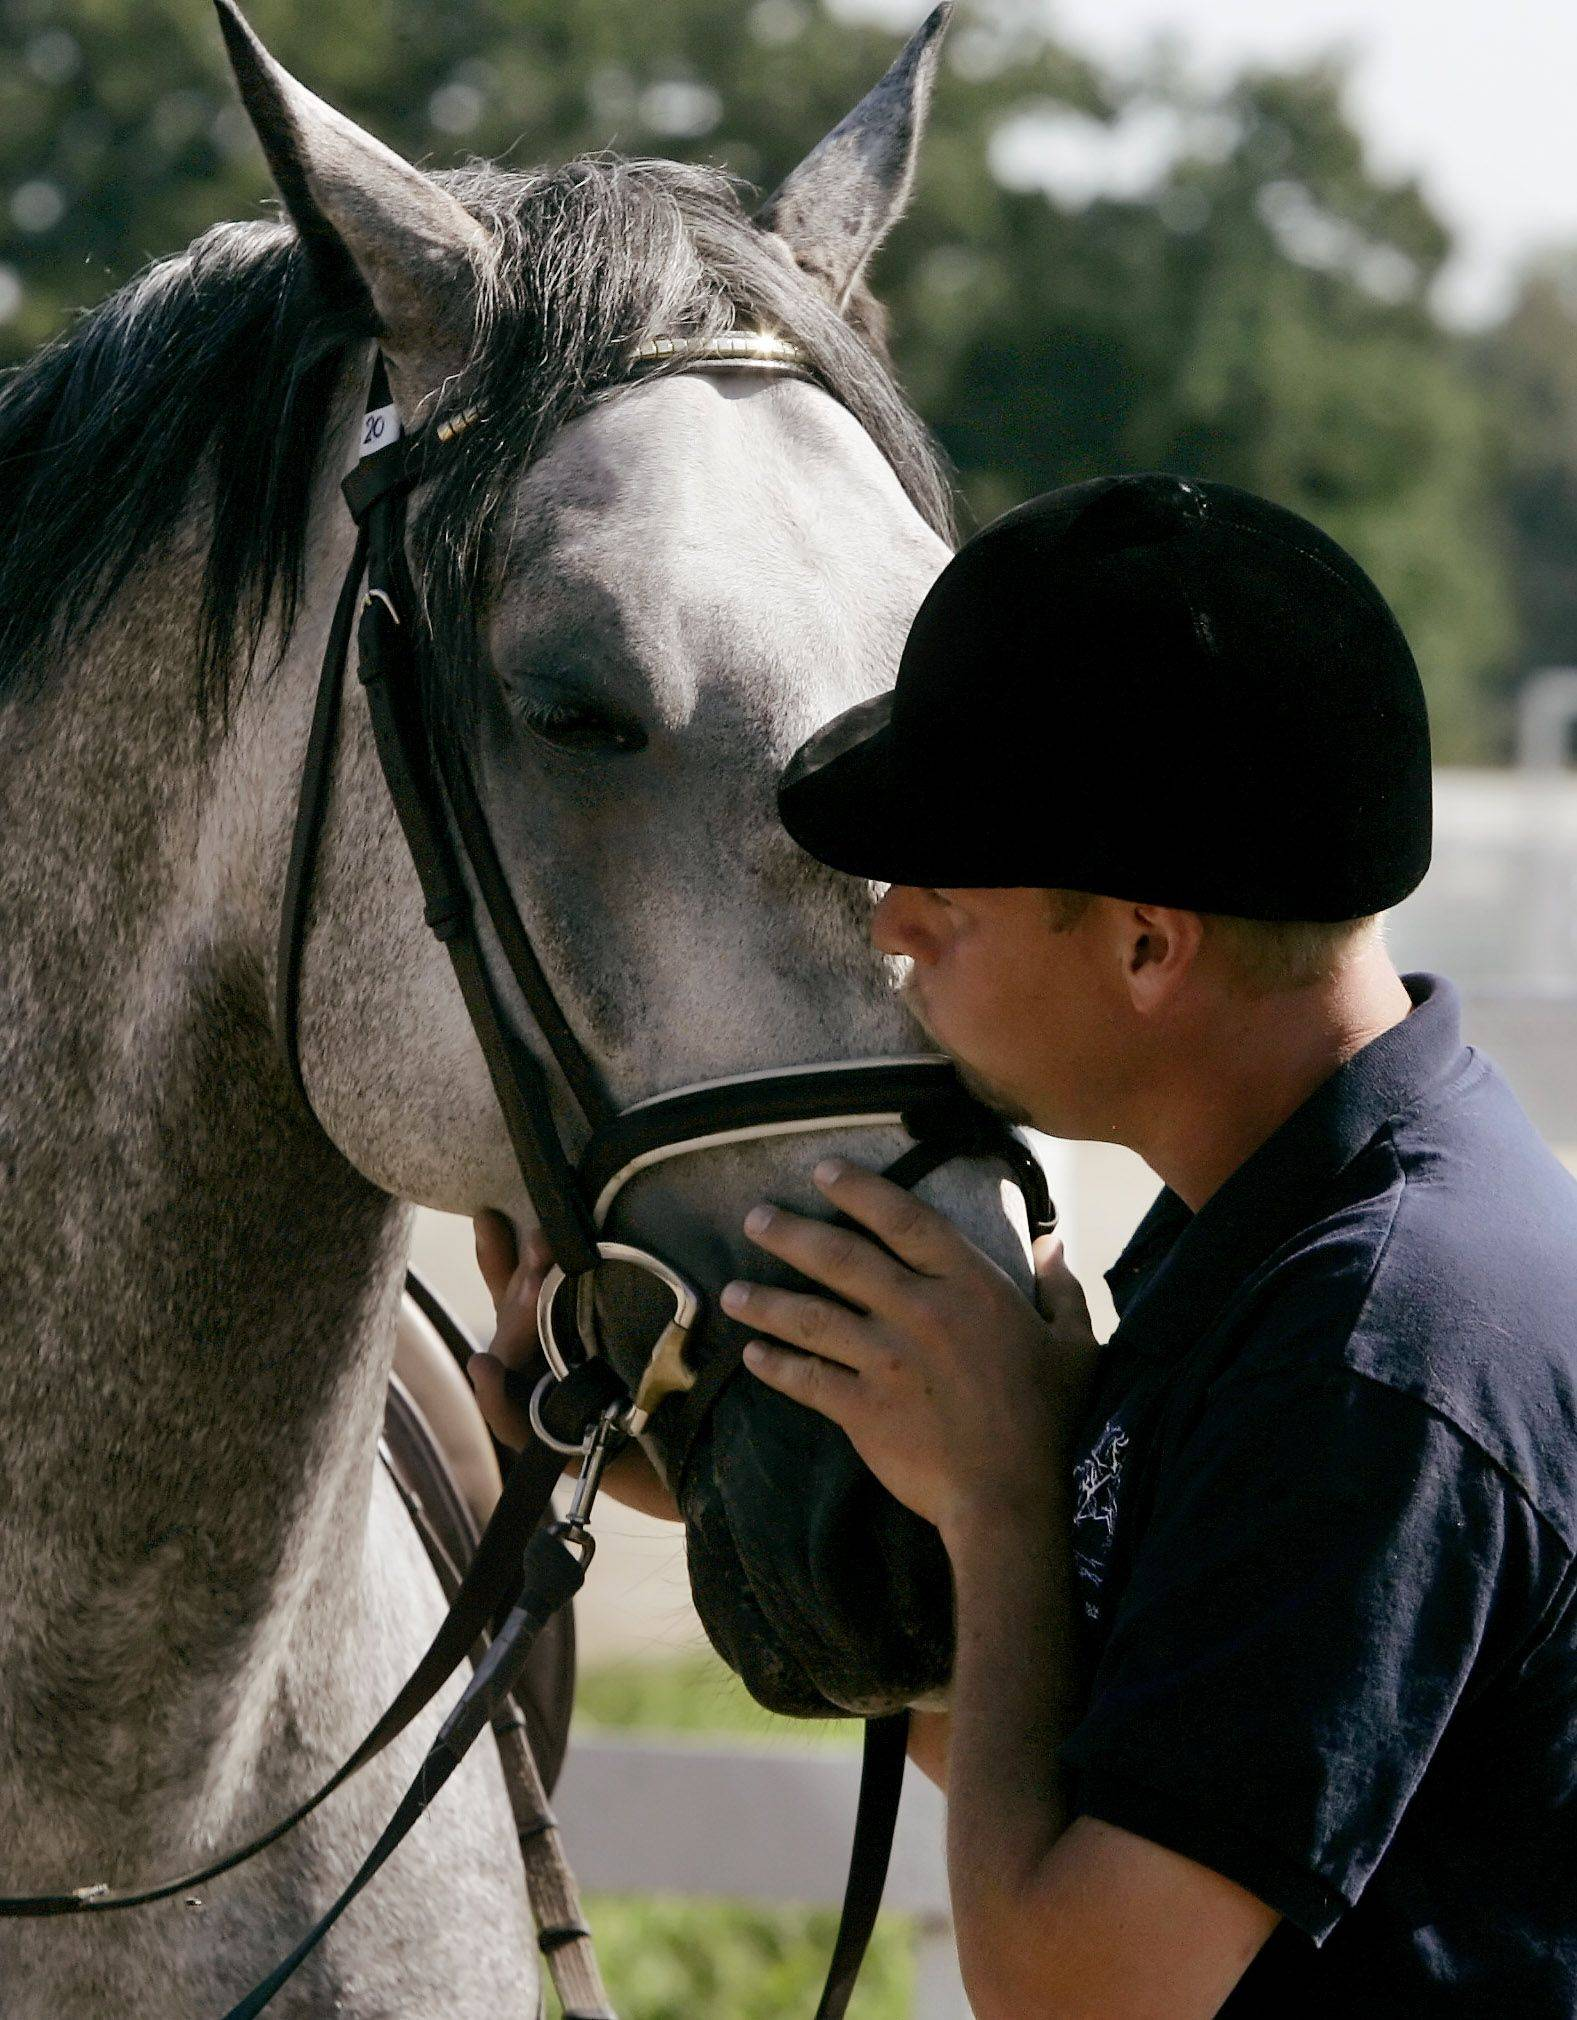 Dressage trainer Victor Pozzo gives four-year-old Favory VII Anita a kiss after riding him in the training ring.